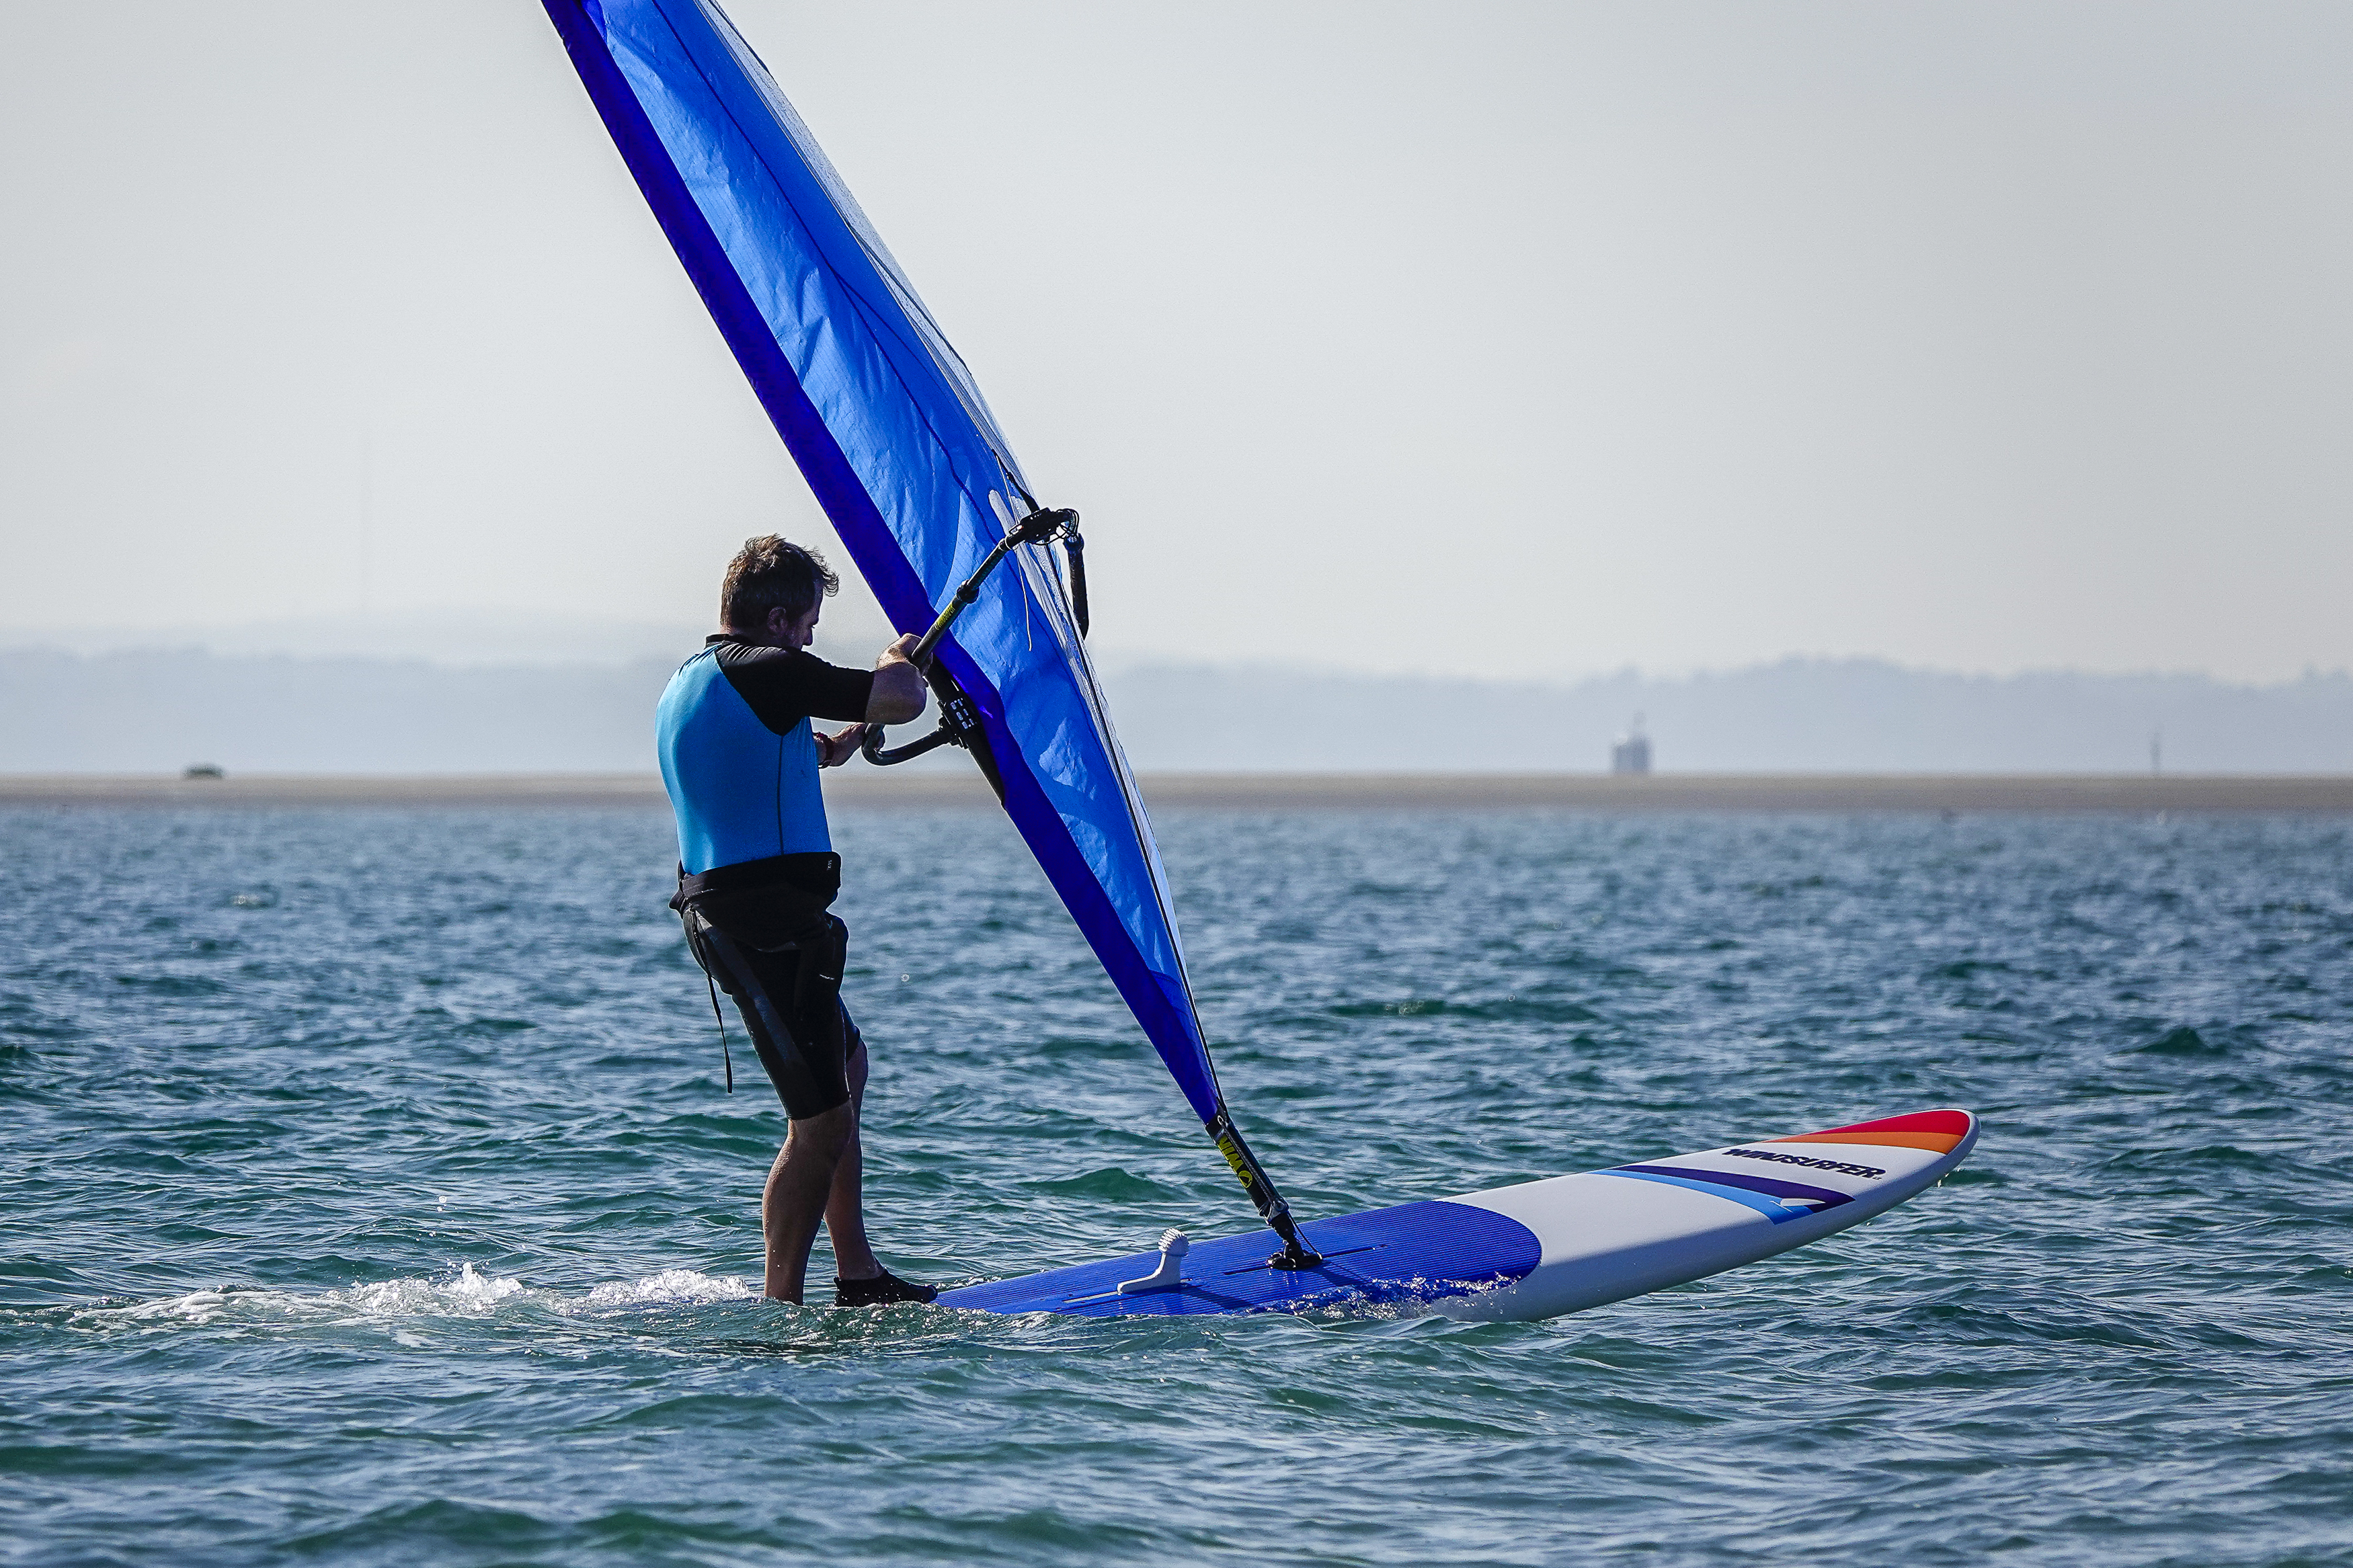 James Jagger Windsurfer LT #1